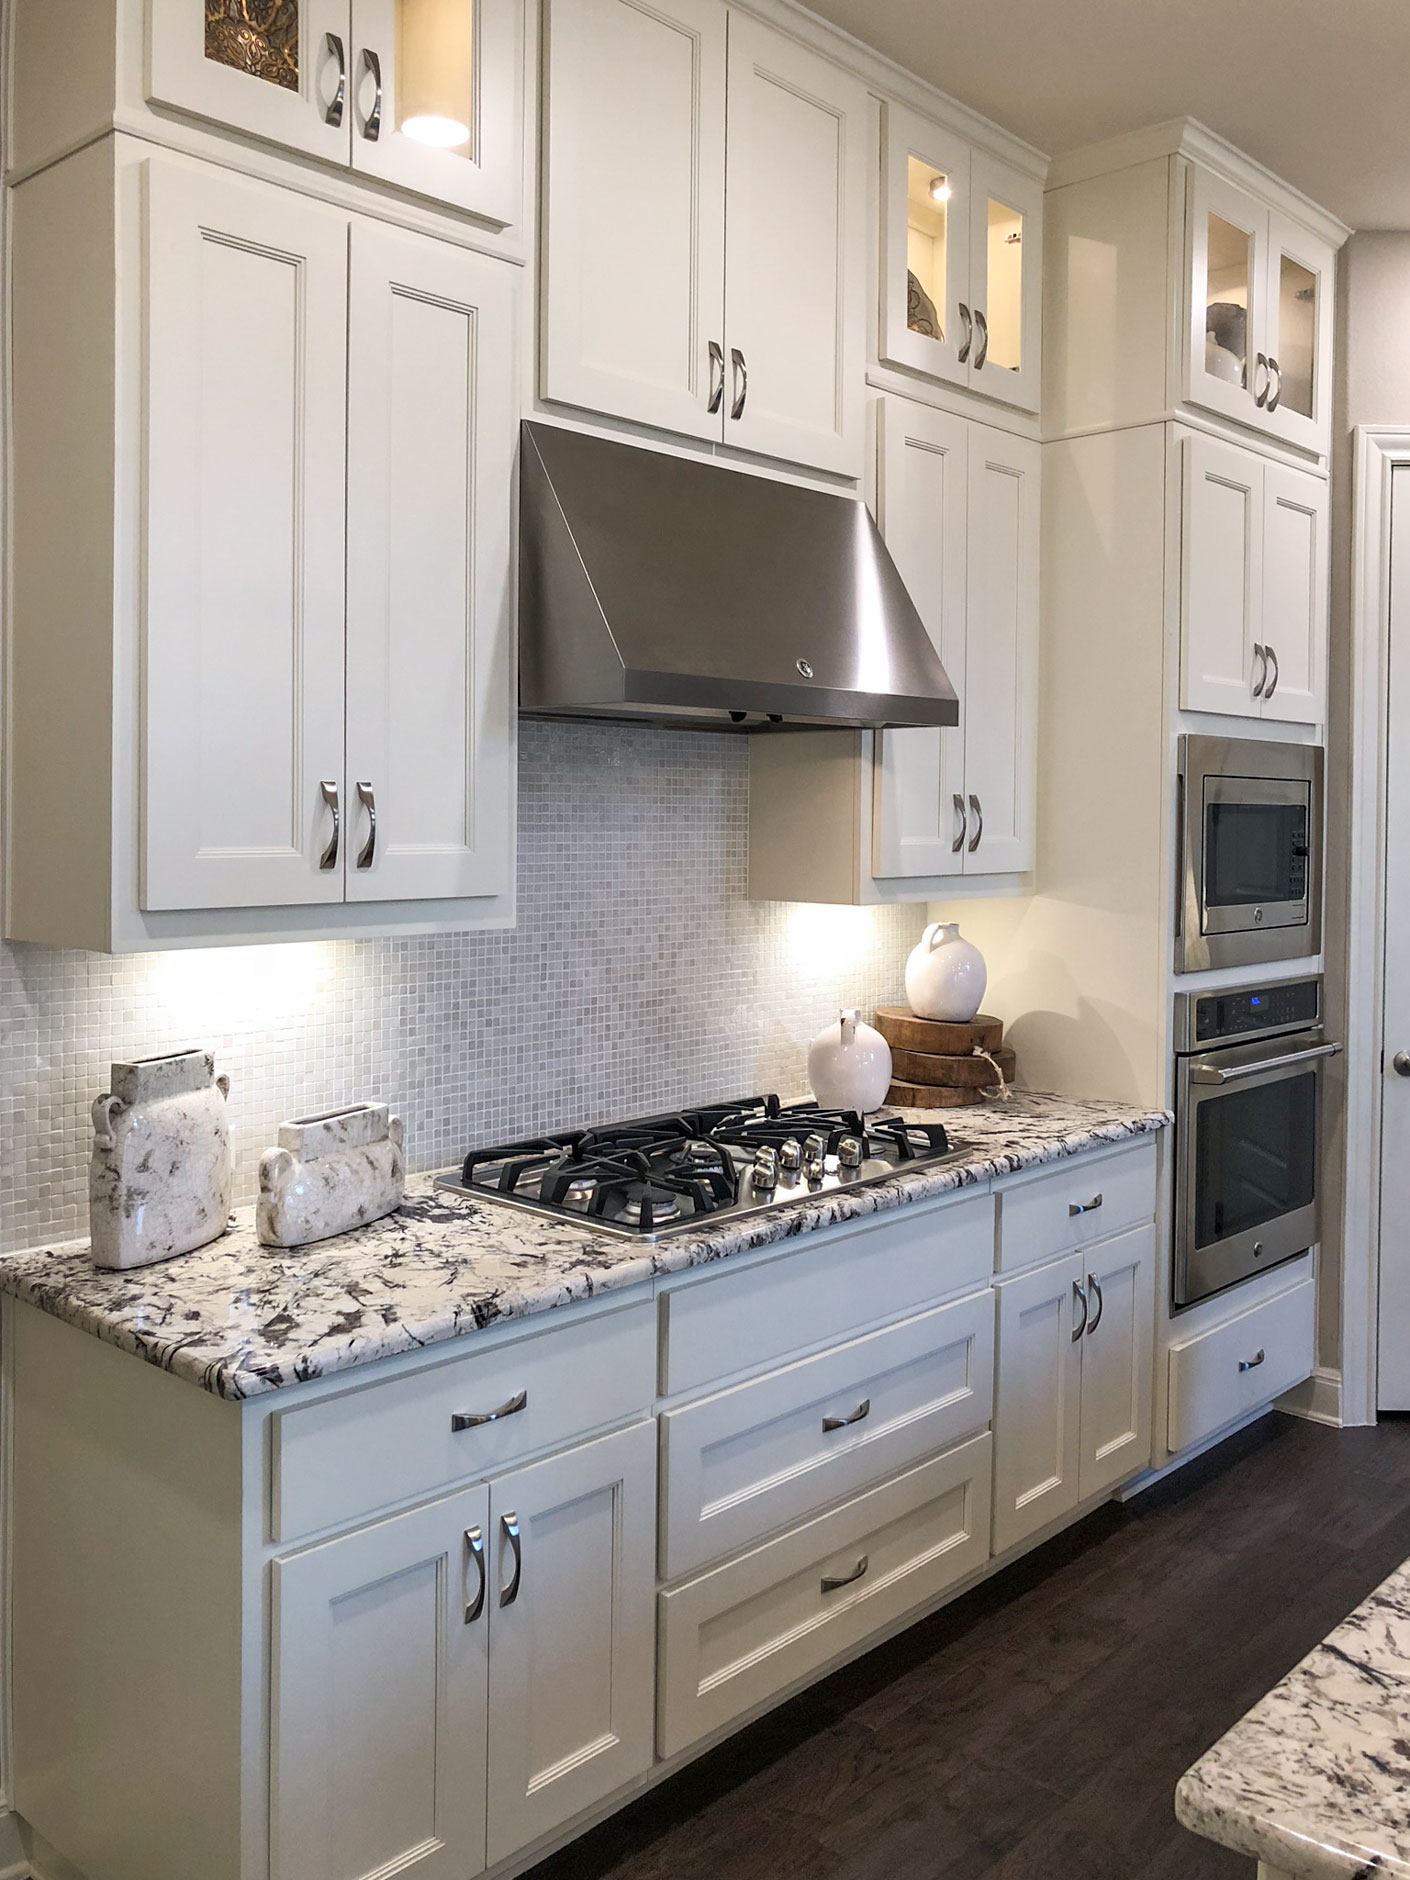 Large Drawers Under Cooktop Kitchen